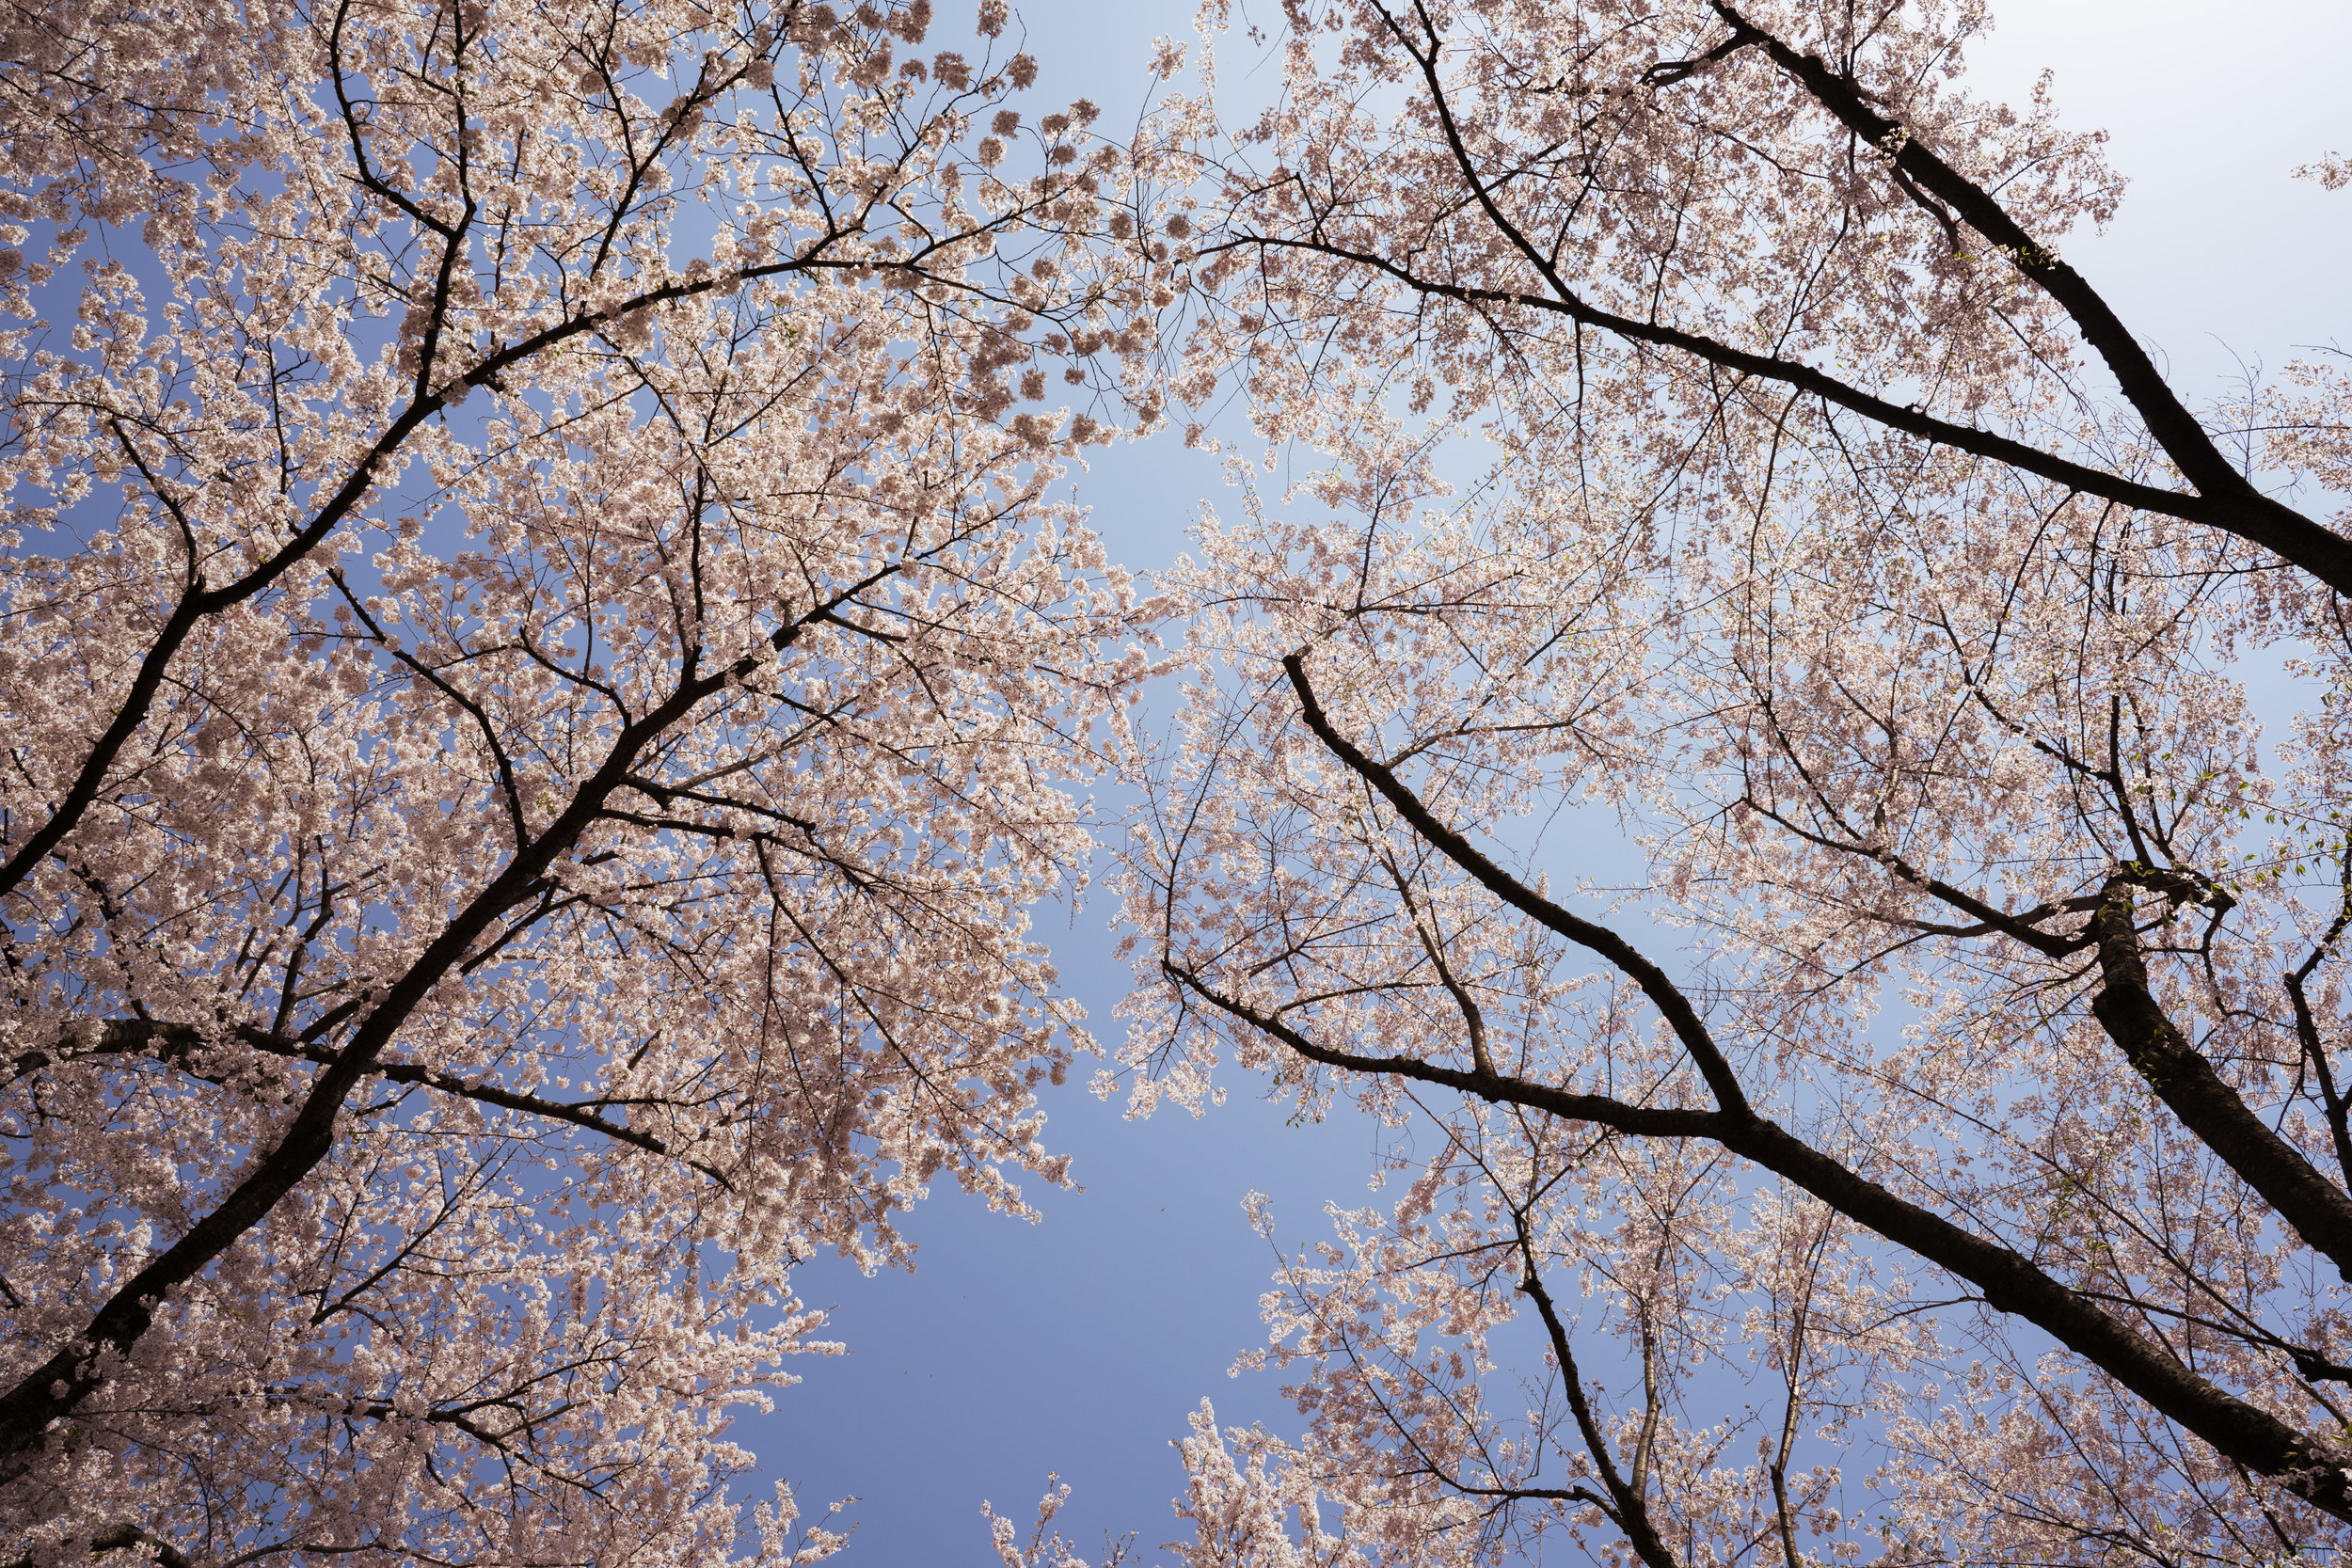 A sky of cherry blossoms - 25mm @ F9